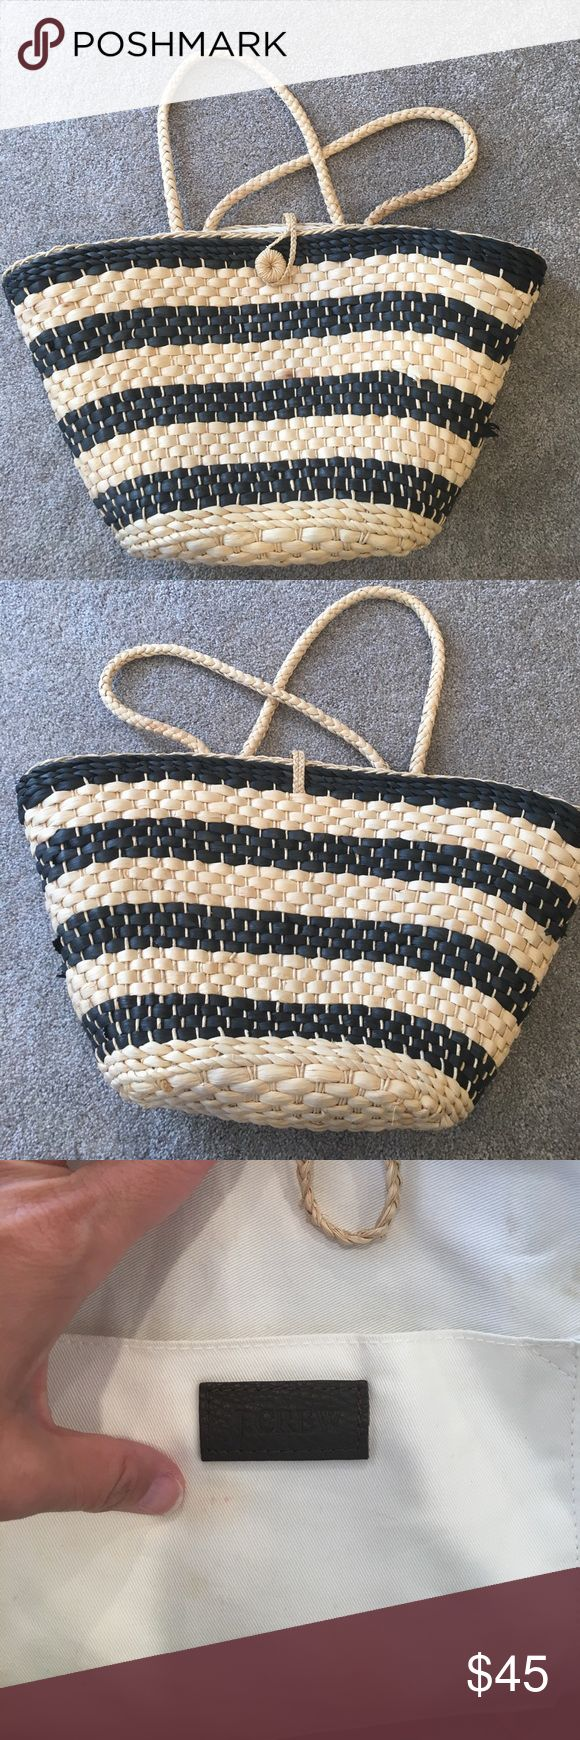 J Crew Beach Straw Bag Black and beige straw bag with pocket. Used a few times but in great condition. Look at the pics for imperfections. J. Crew Bags Totes